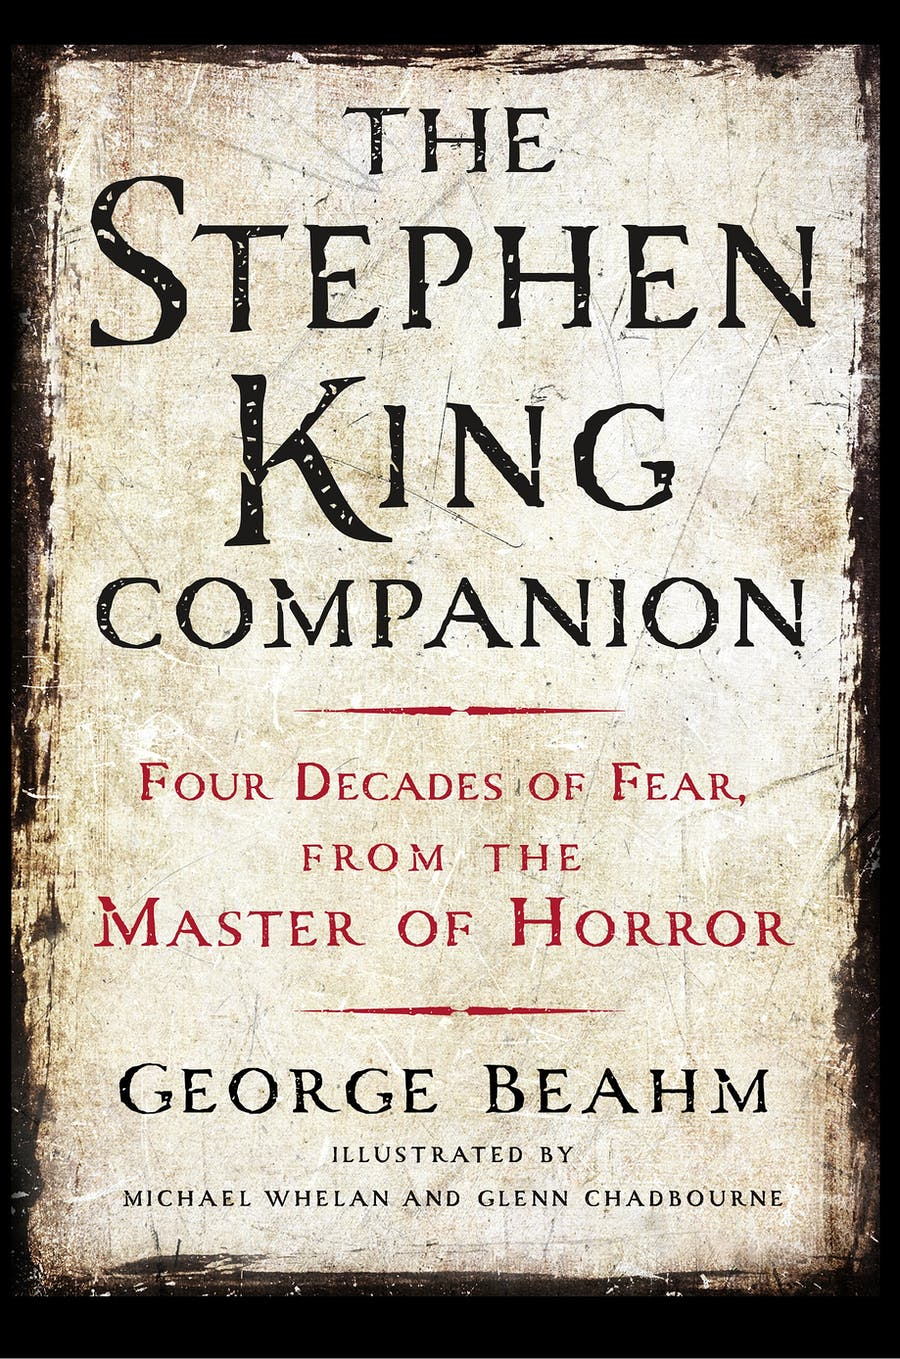 The Stephen King Companion by George Beahm; Illustrated By Michael Whelan and Glenn Chadbourne